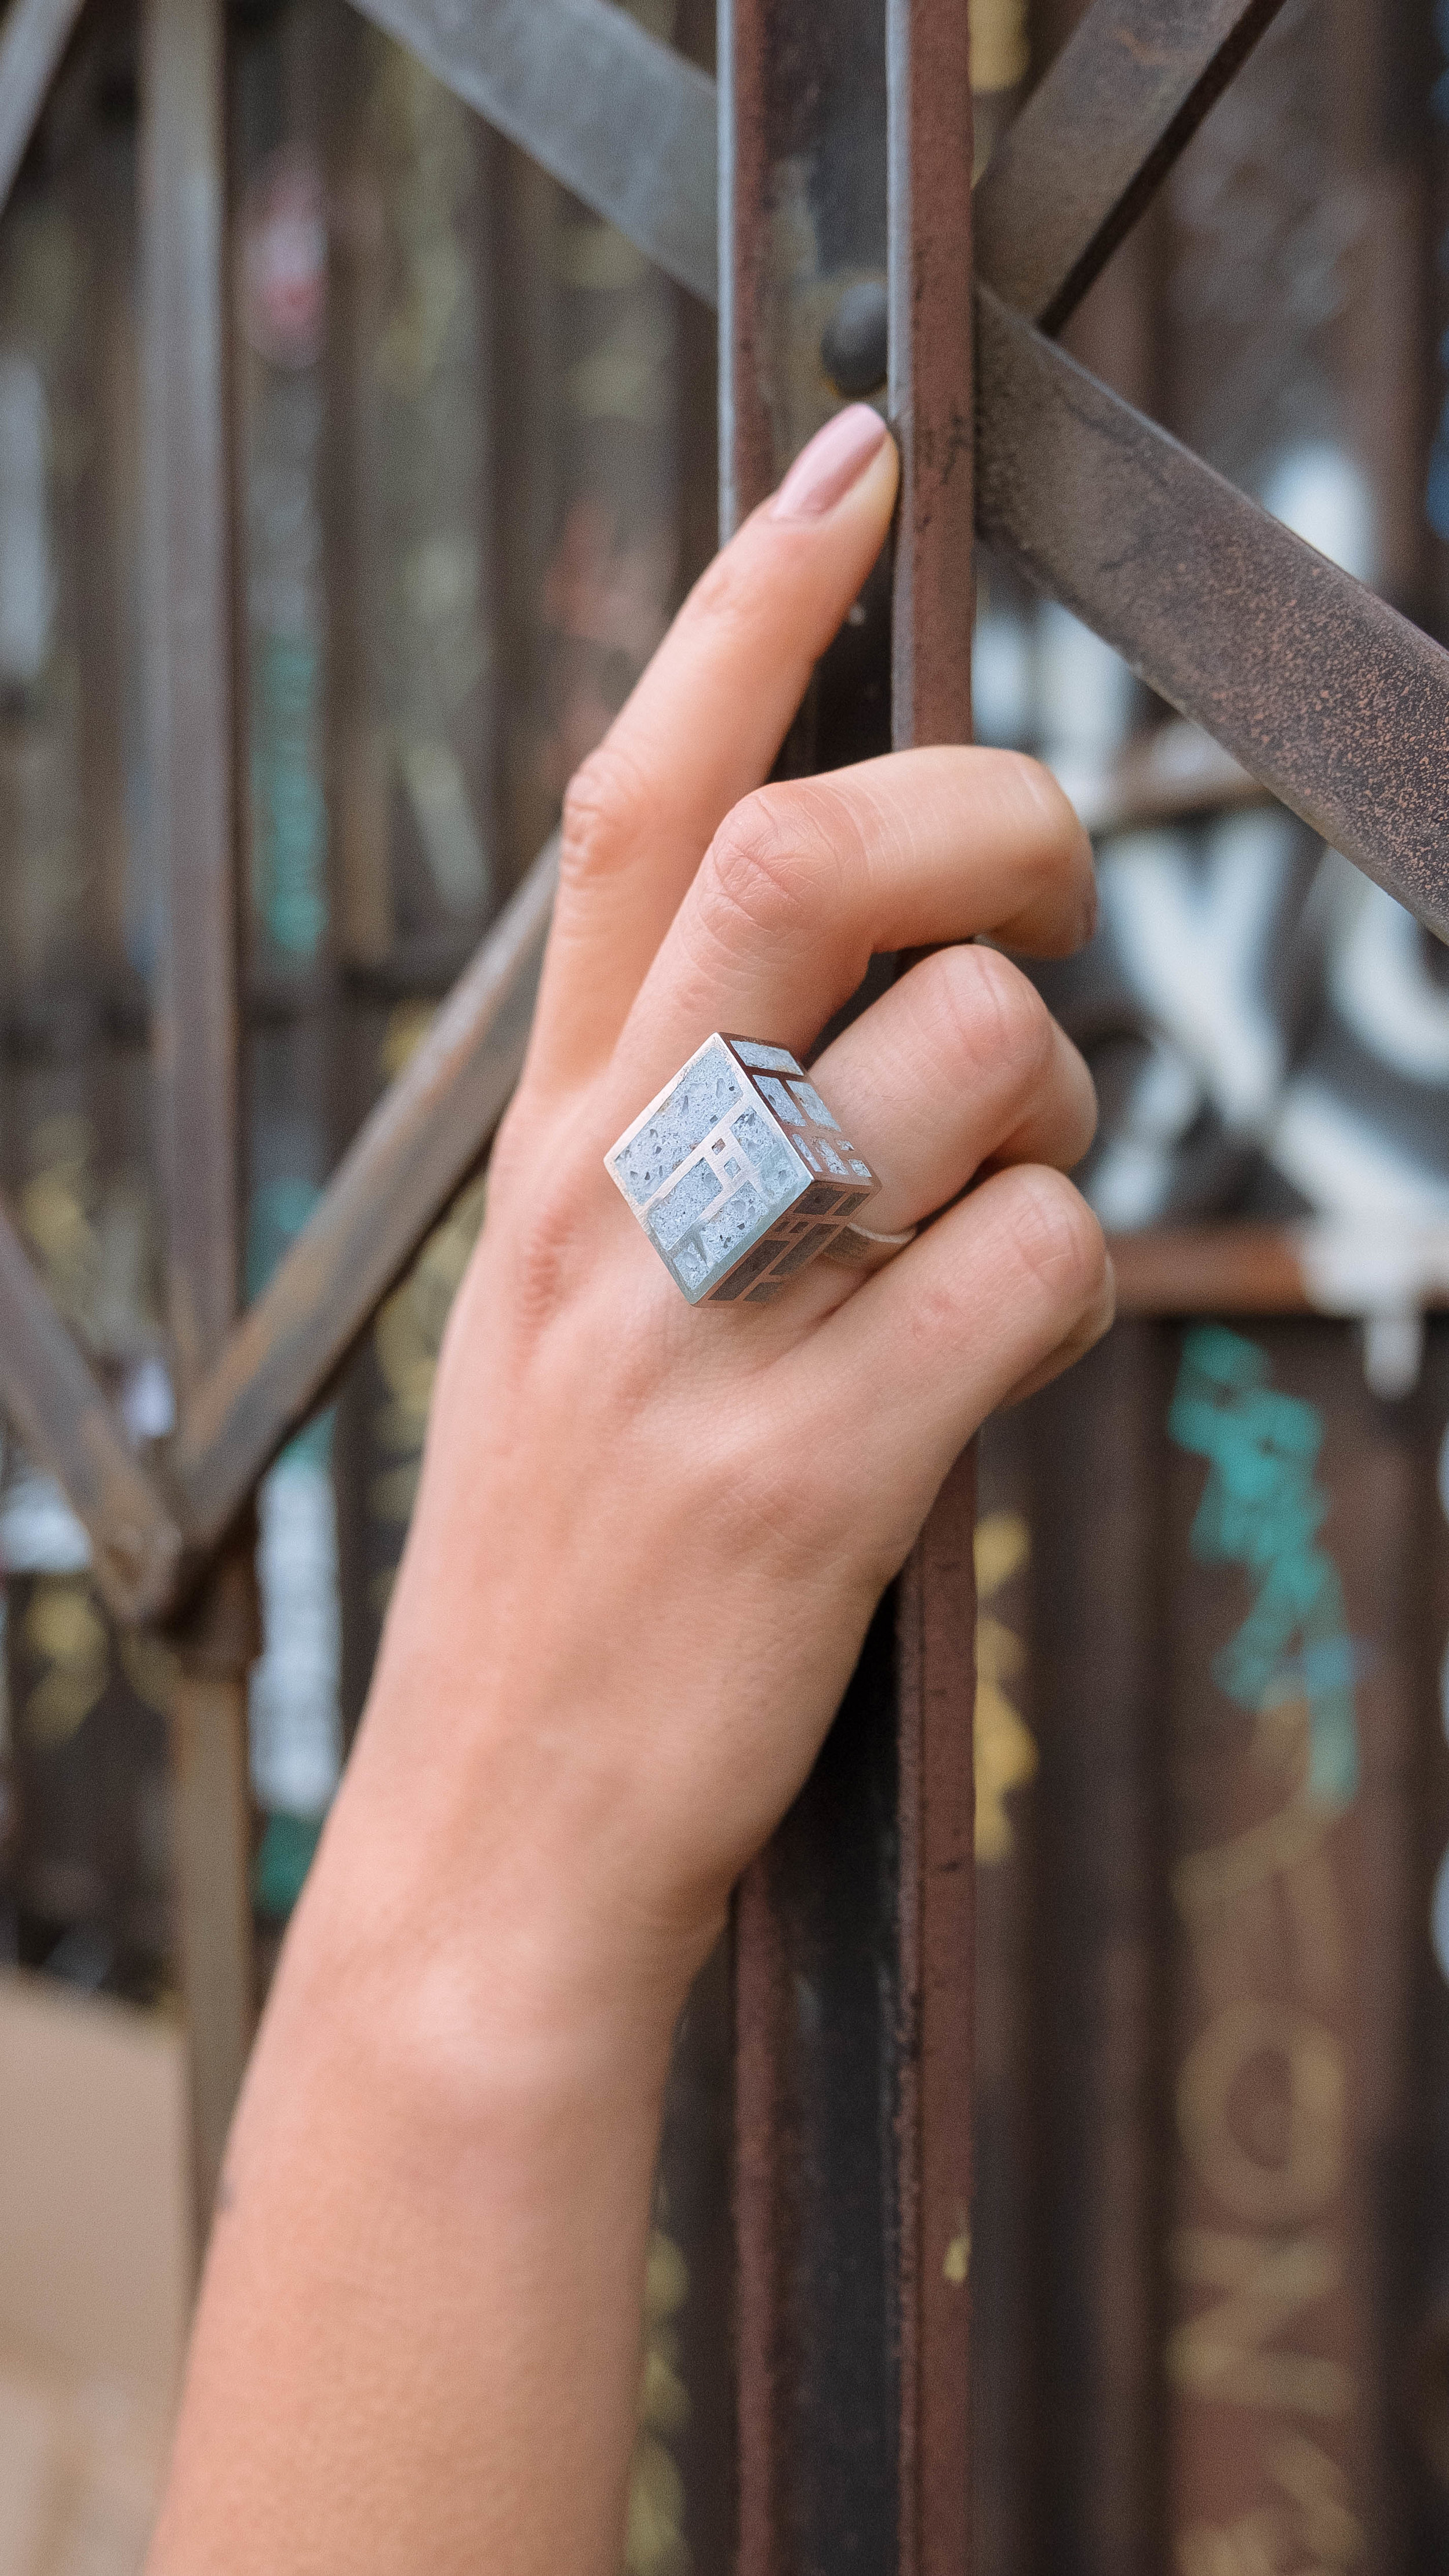 zimarty_wearable_architecture_modrian_ring_cube_ring_concretering.jpg